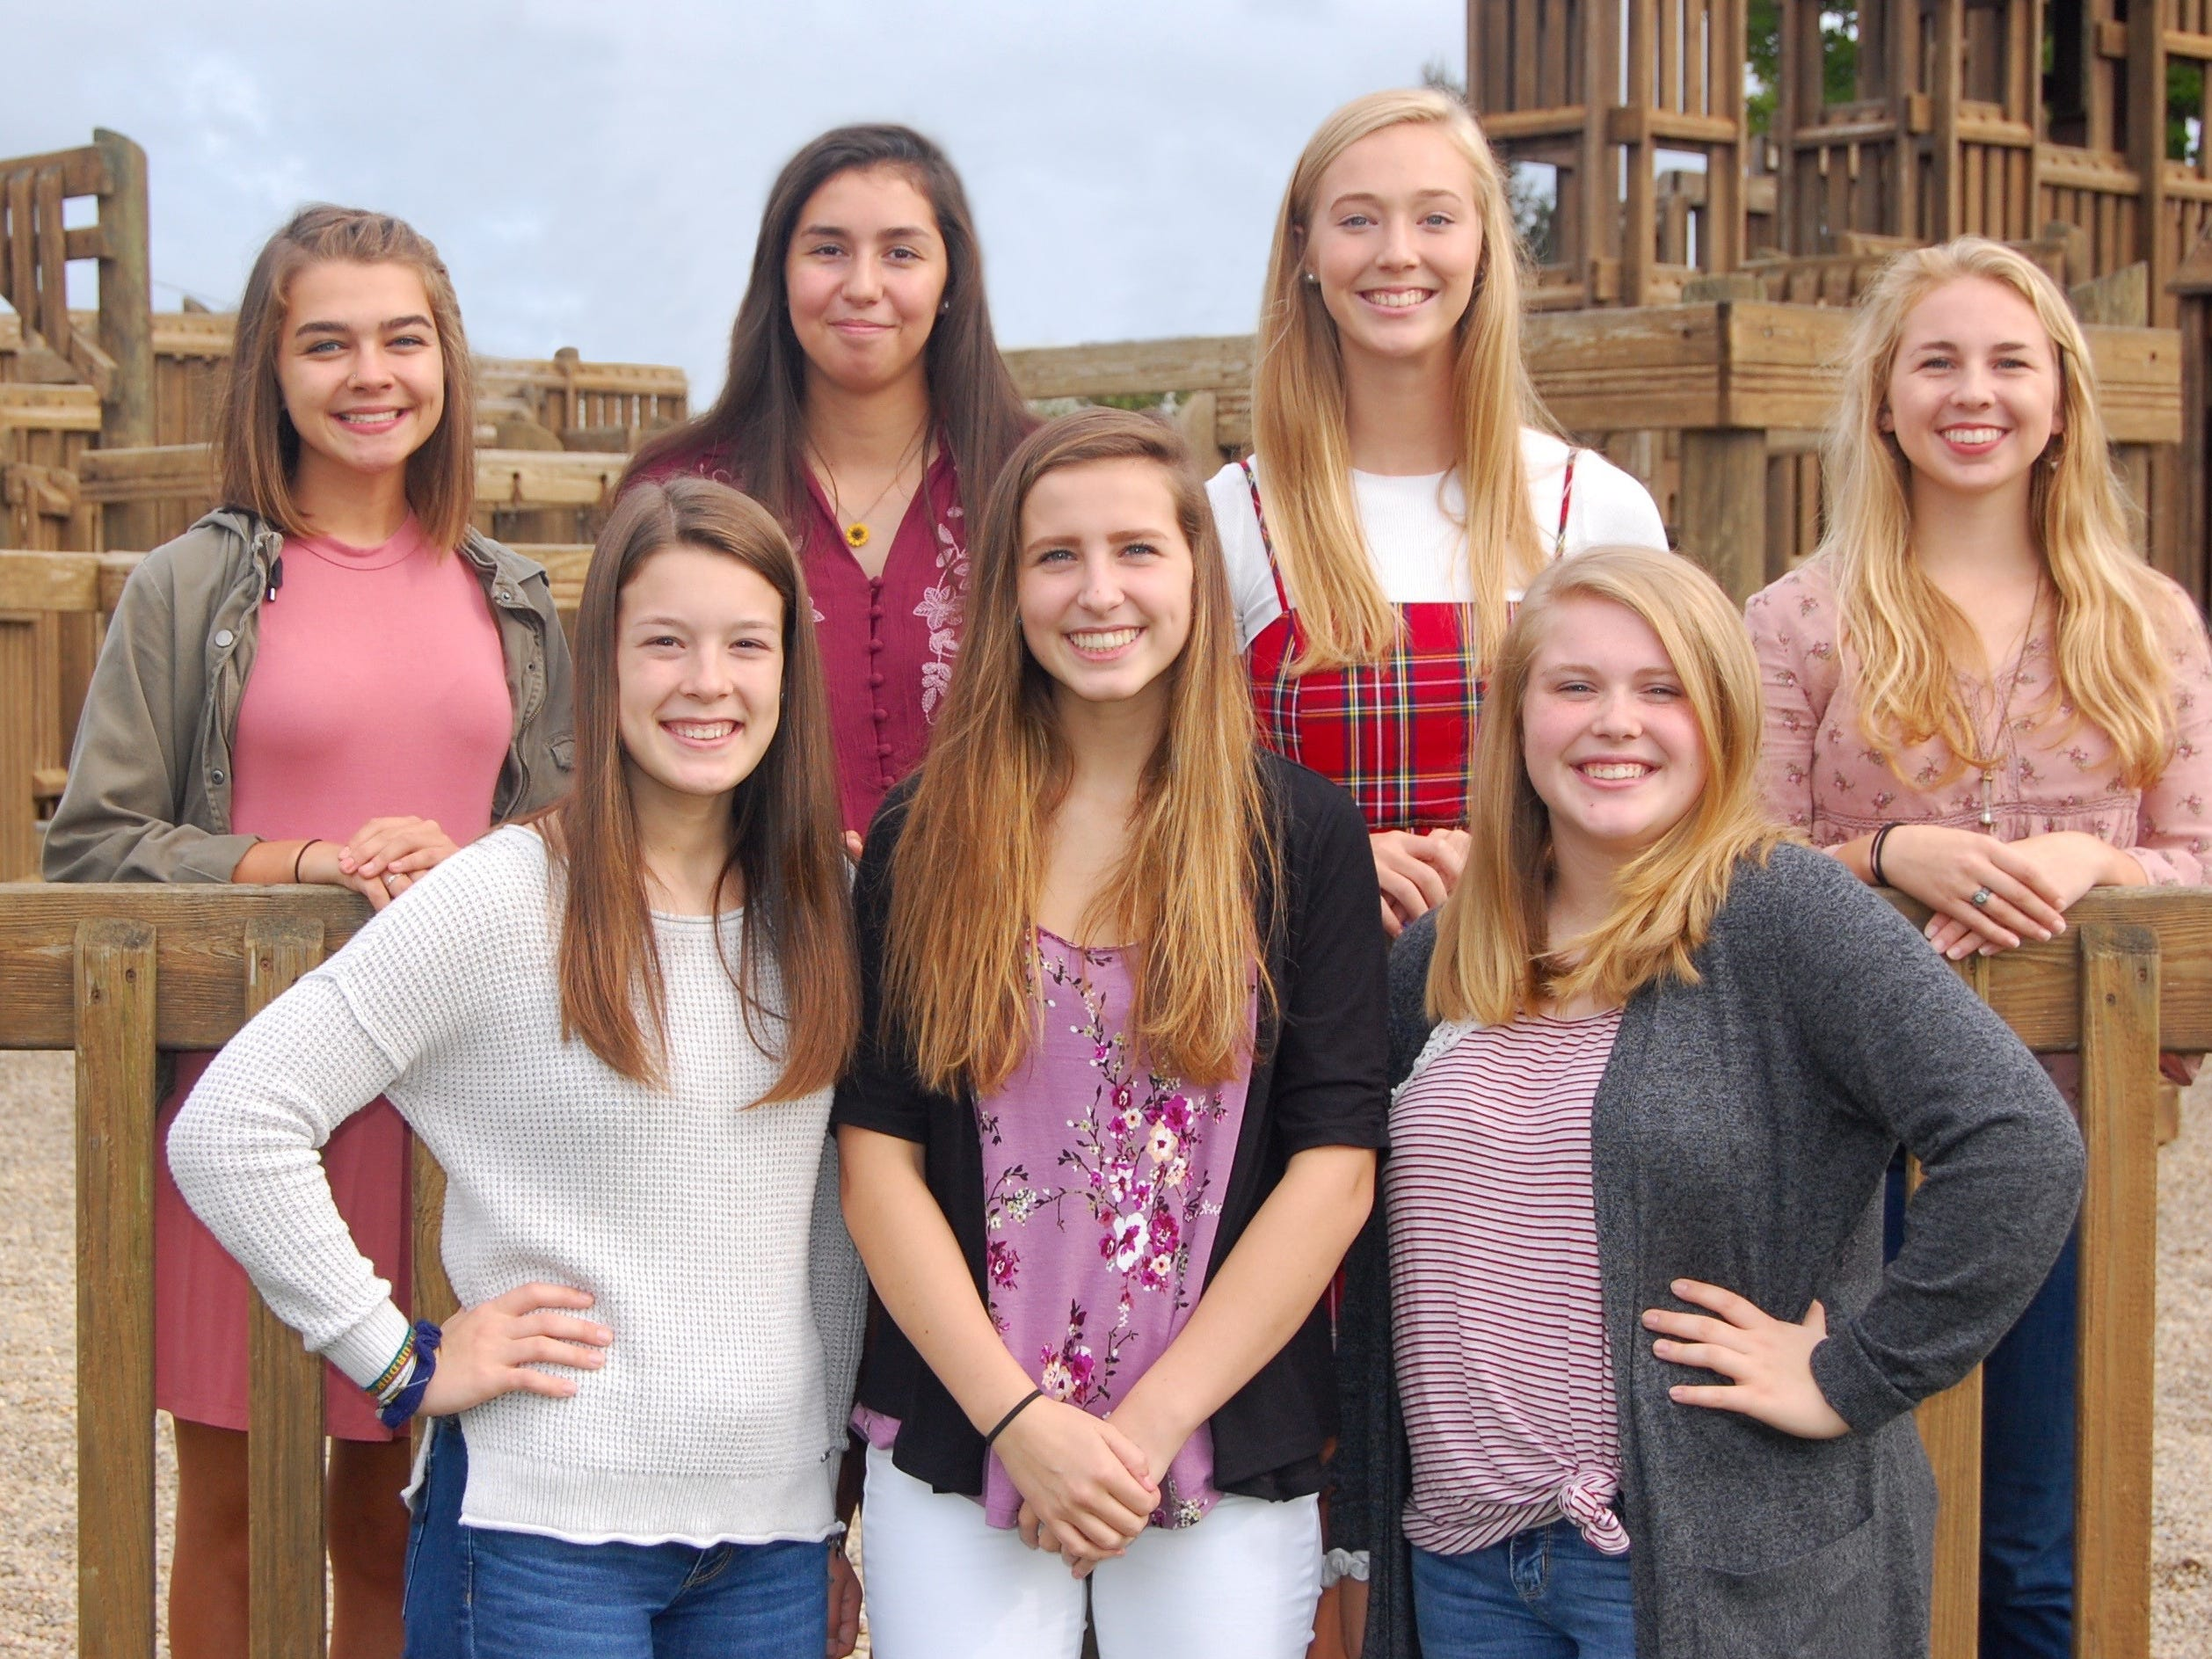 Berne Union Homecoming Court: (left to right, top row) Audrey Swick, Keri Speakman, Queen Sidney Little and Jacquie Watson. (left to right, bottom row) Sydney Miller, Abbi Hintz and Kaiya Smith